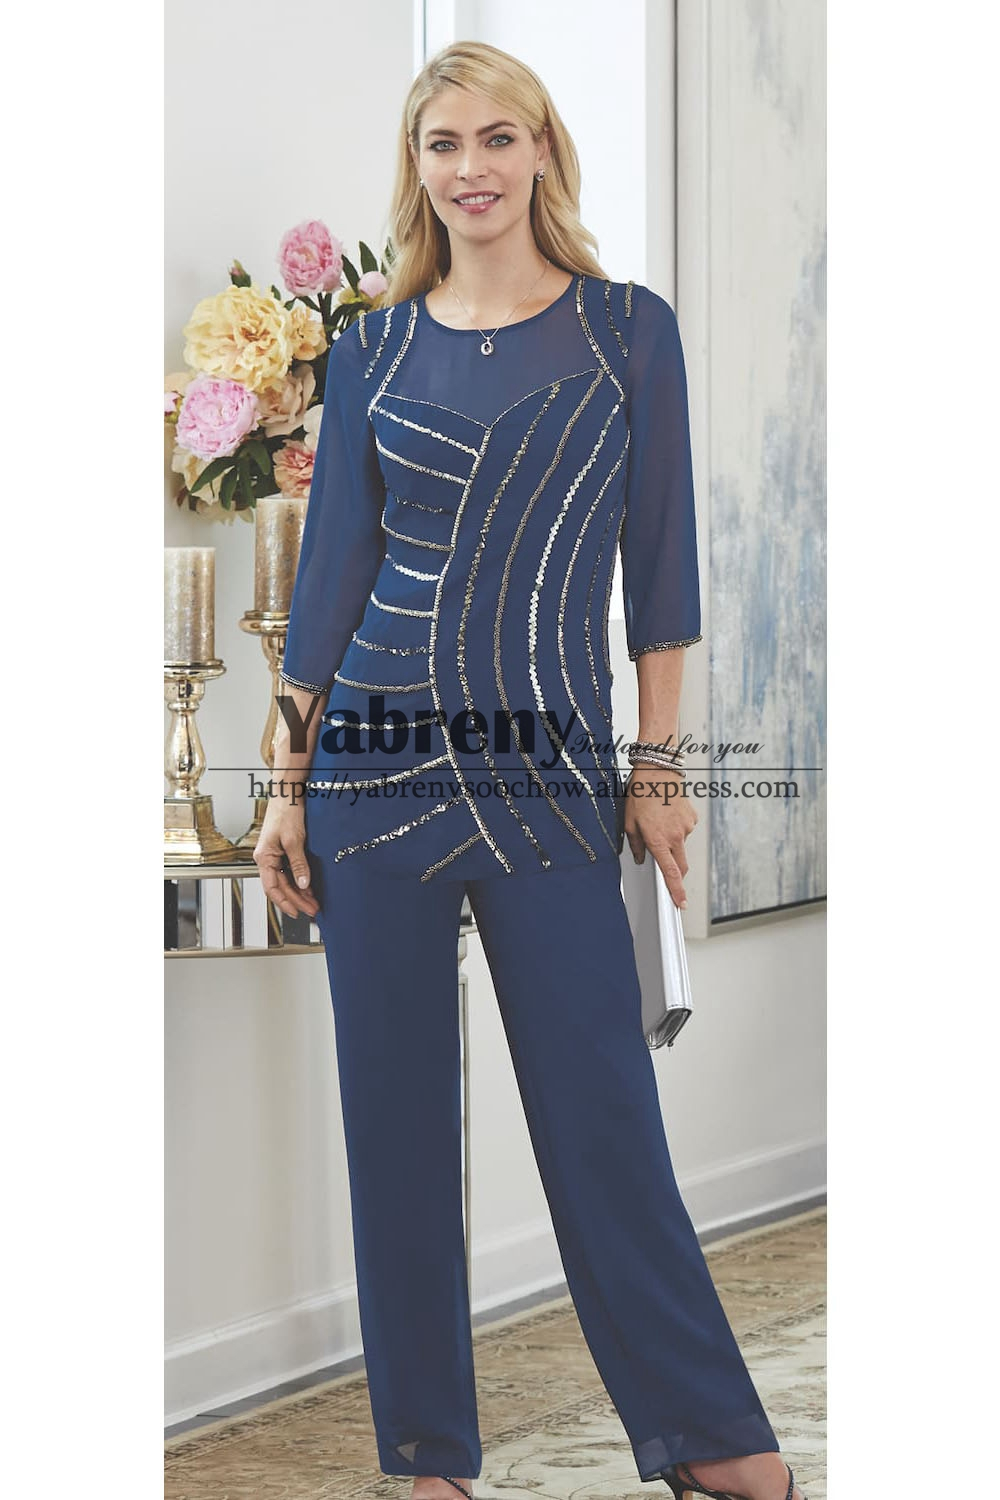 High-end Navy Beaded Trouser Outfit Elegant Mother Of The Bride Pant Suit Chiffon Dress Elastic Waist Custom-made Plus Size